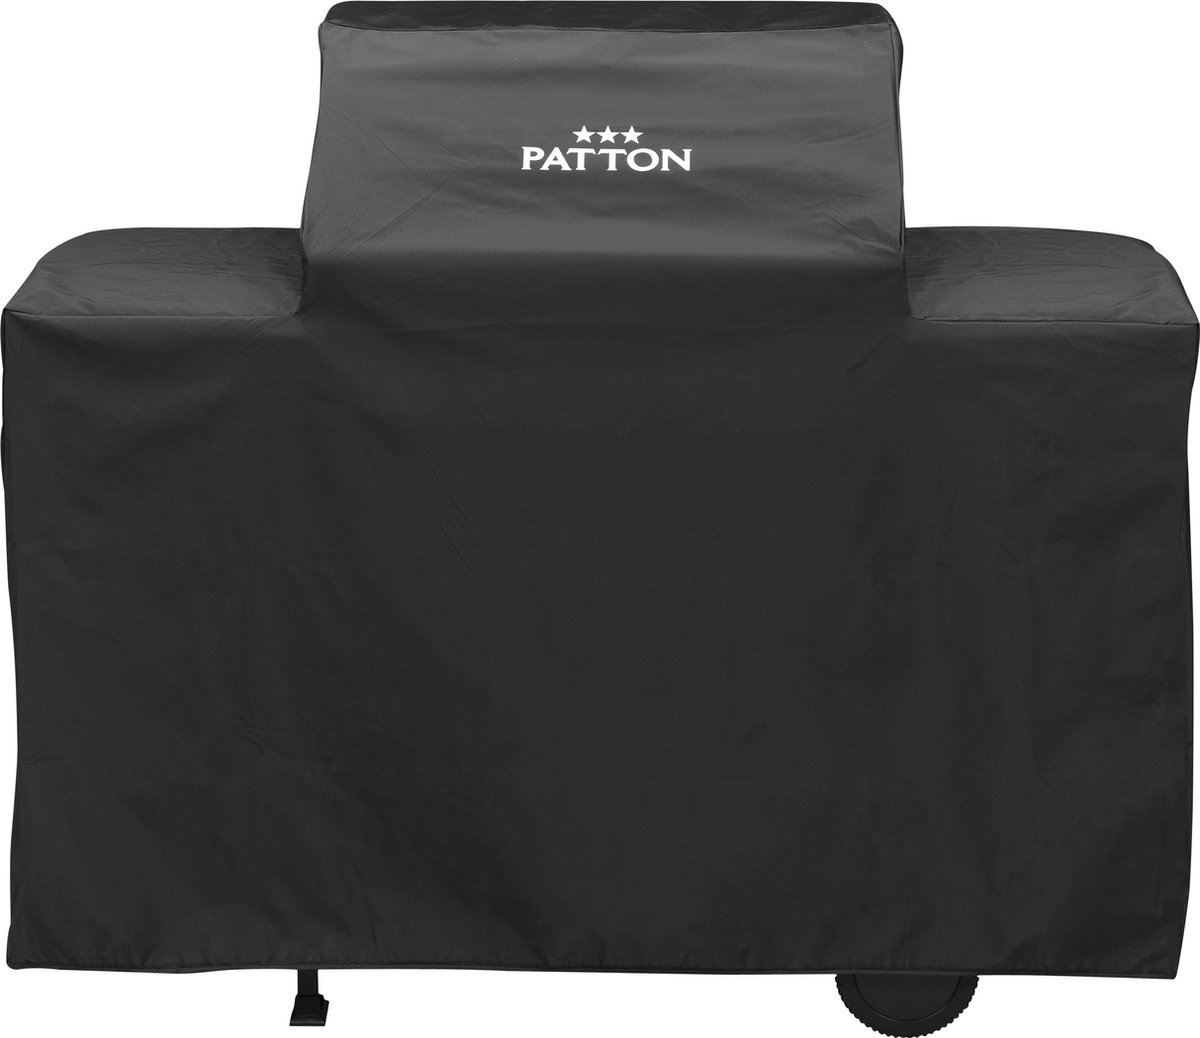 Patton houtskool buitenkeuken C2 Charcoal Chef (32) XL